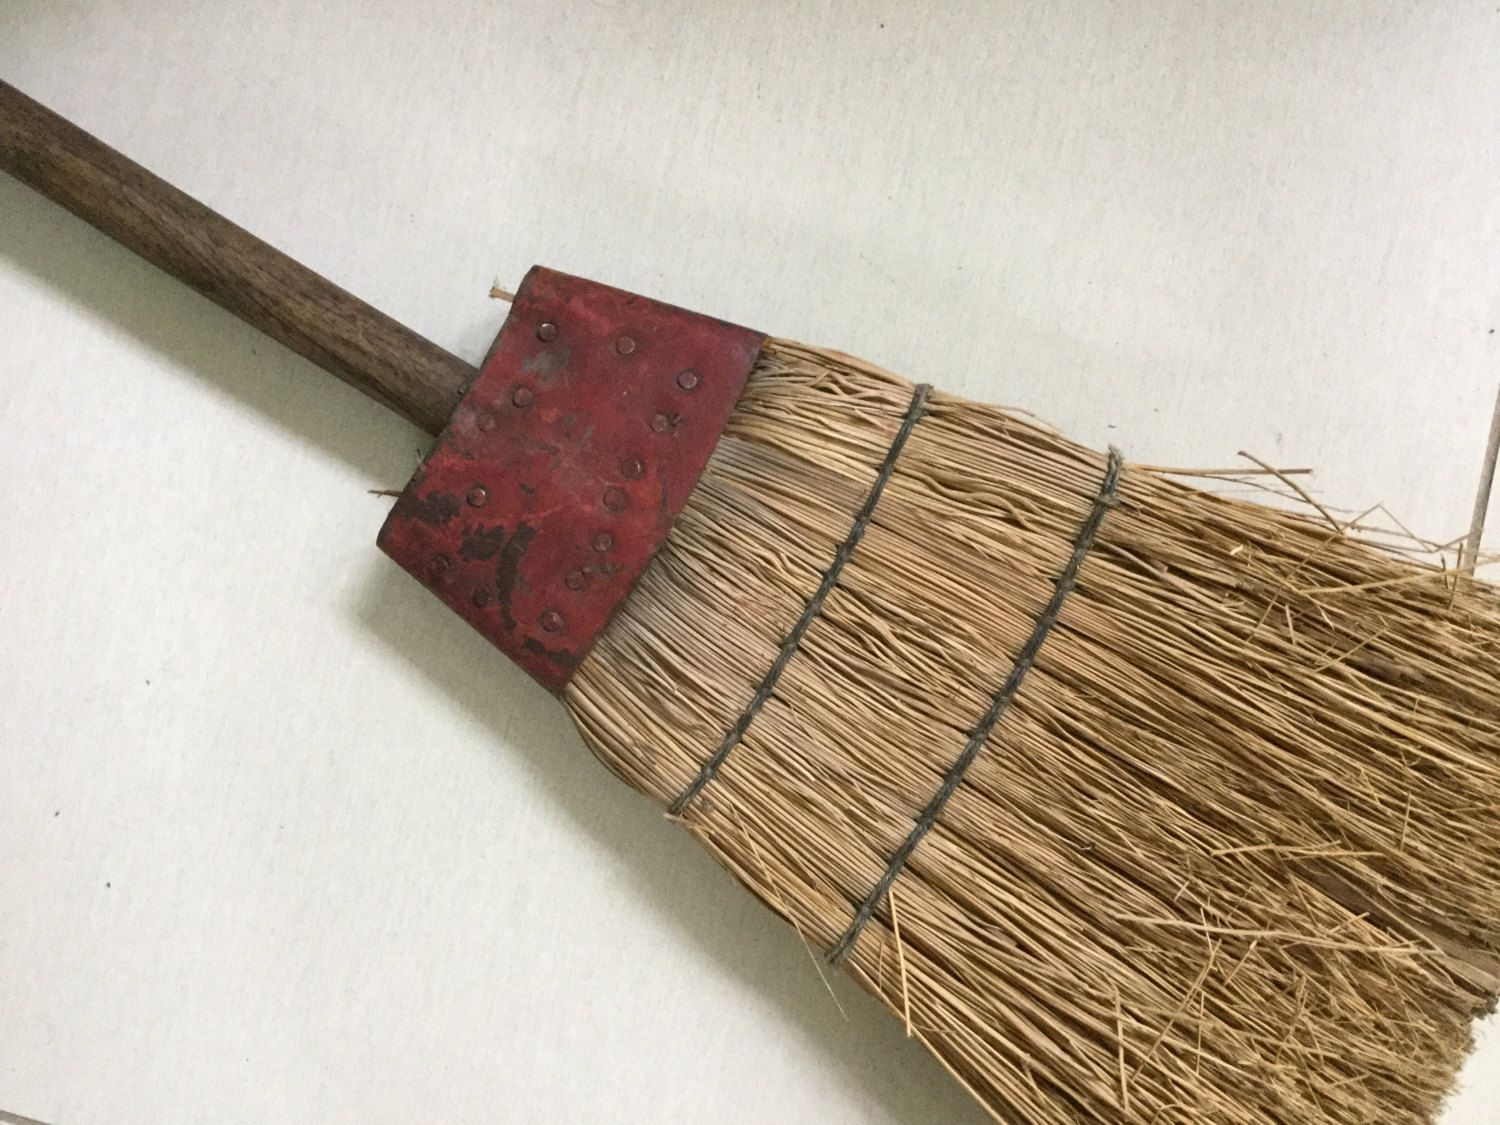 Pin By D M On Brooms Brooms Brushes Whisk Broom Old Hands